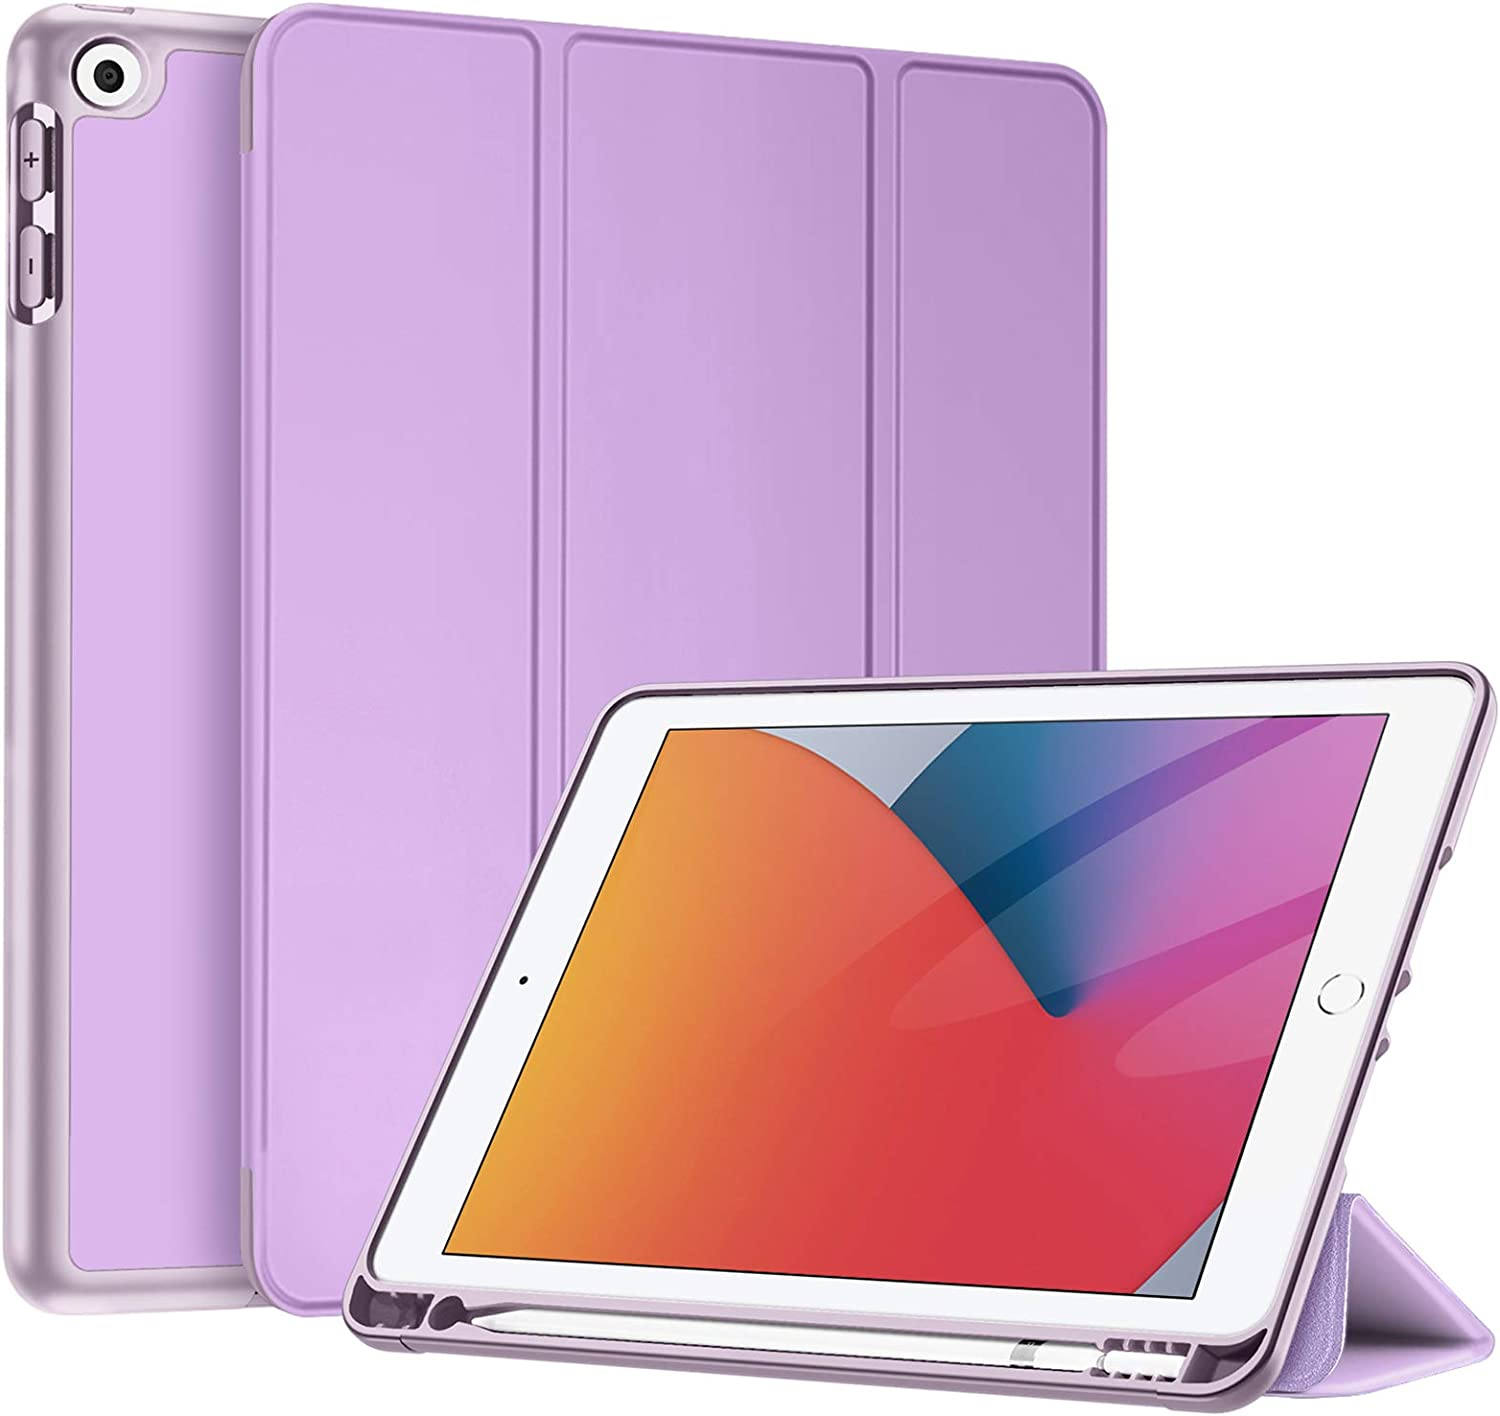 Fintie SlimShell Case for New iPad 8th Gen (2020) / 7th Generation (2019) 10.2 Inch - [Built-in Pencil Holder] Soft TPU Protective Stand Back Cover with Auto Wake/Sleep, Violet